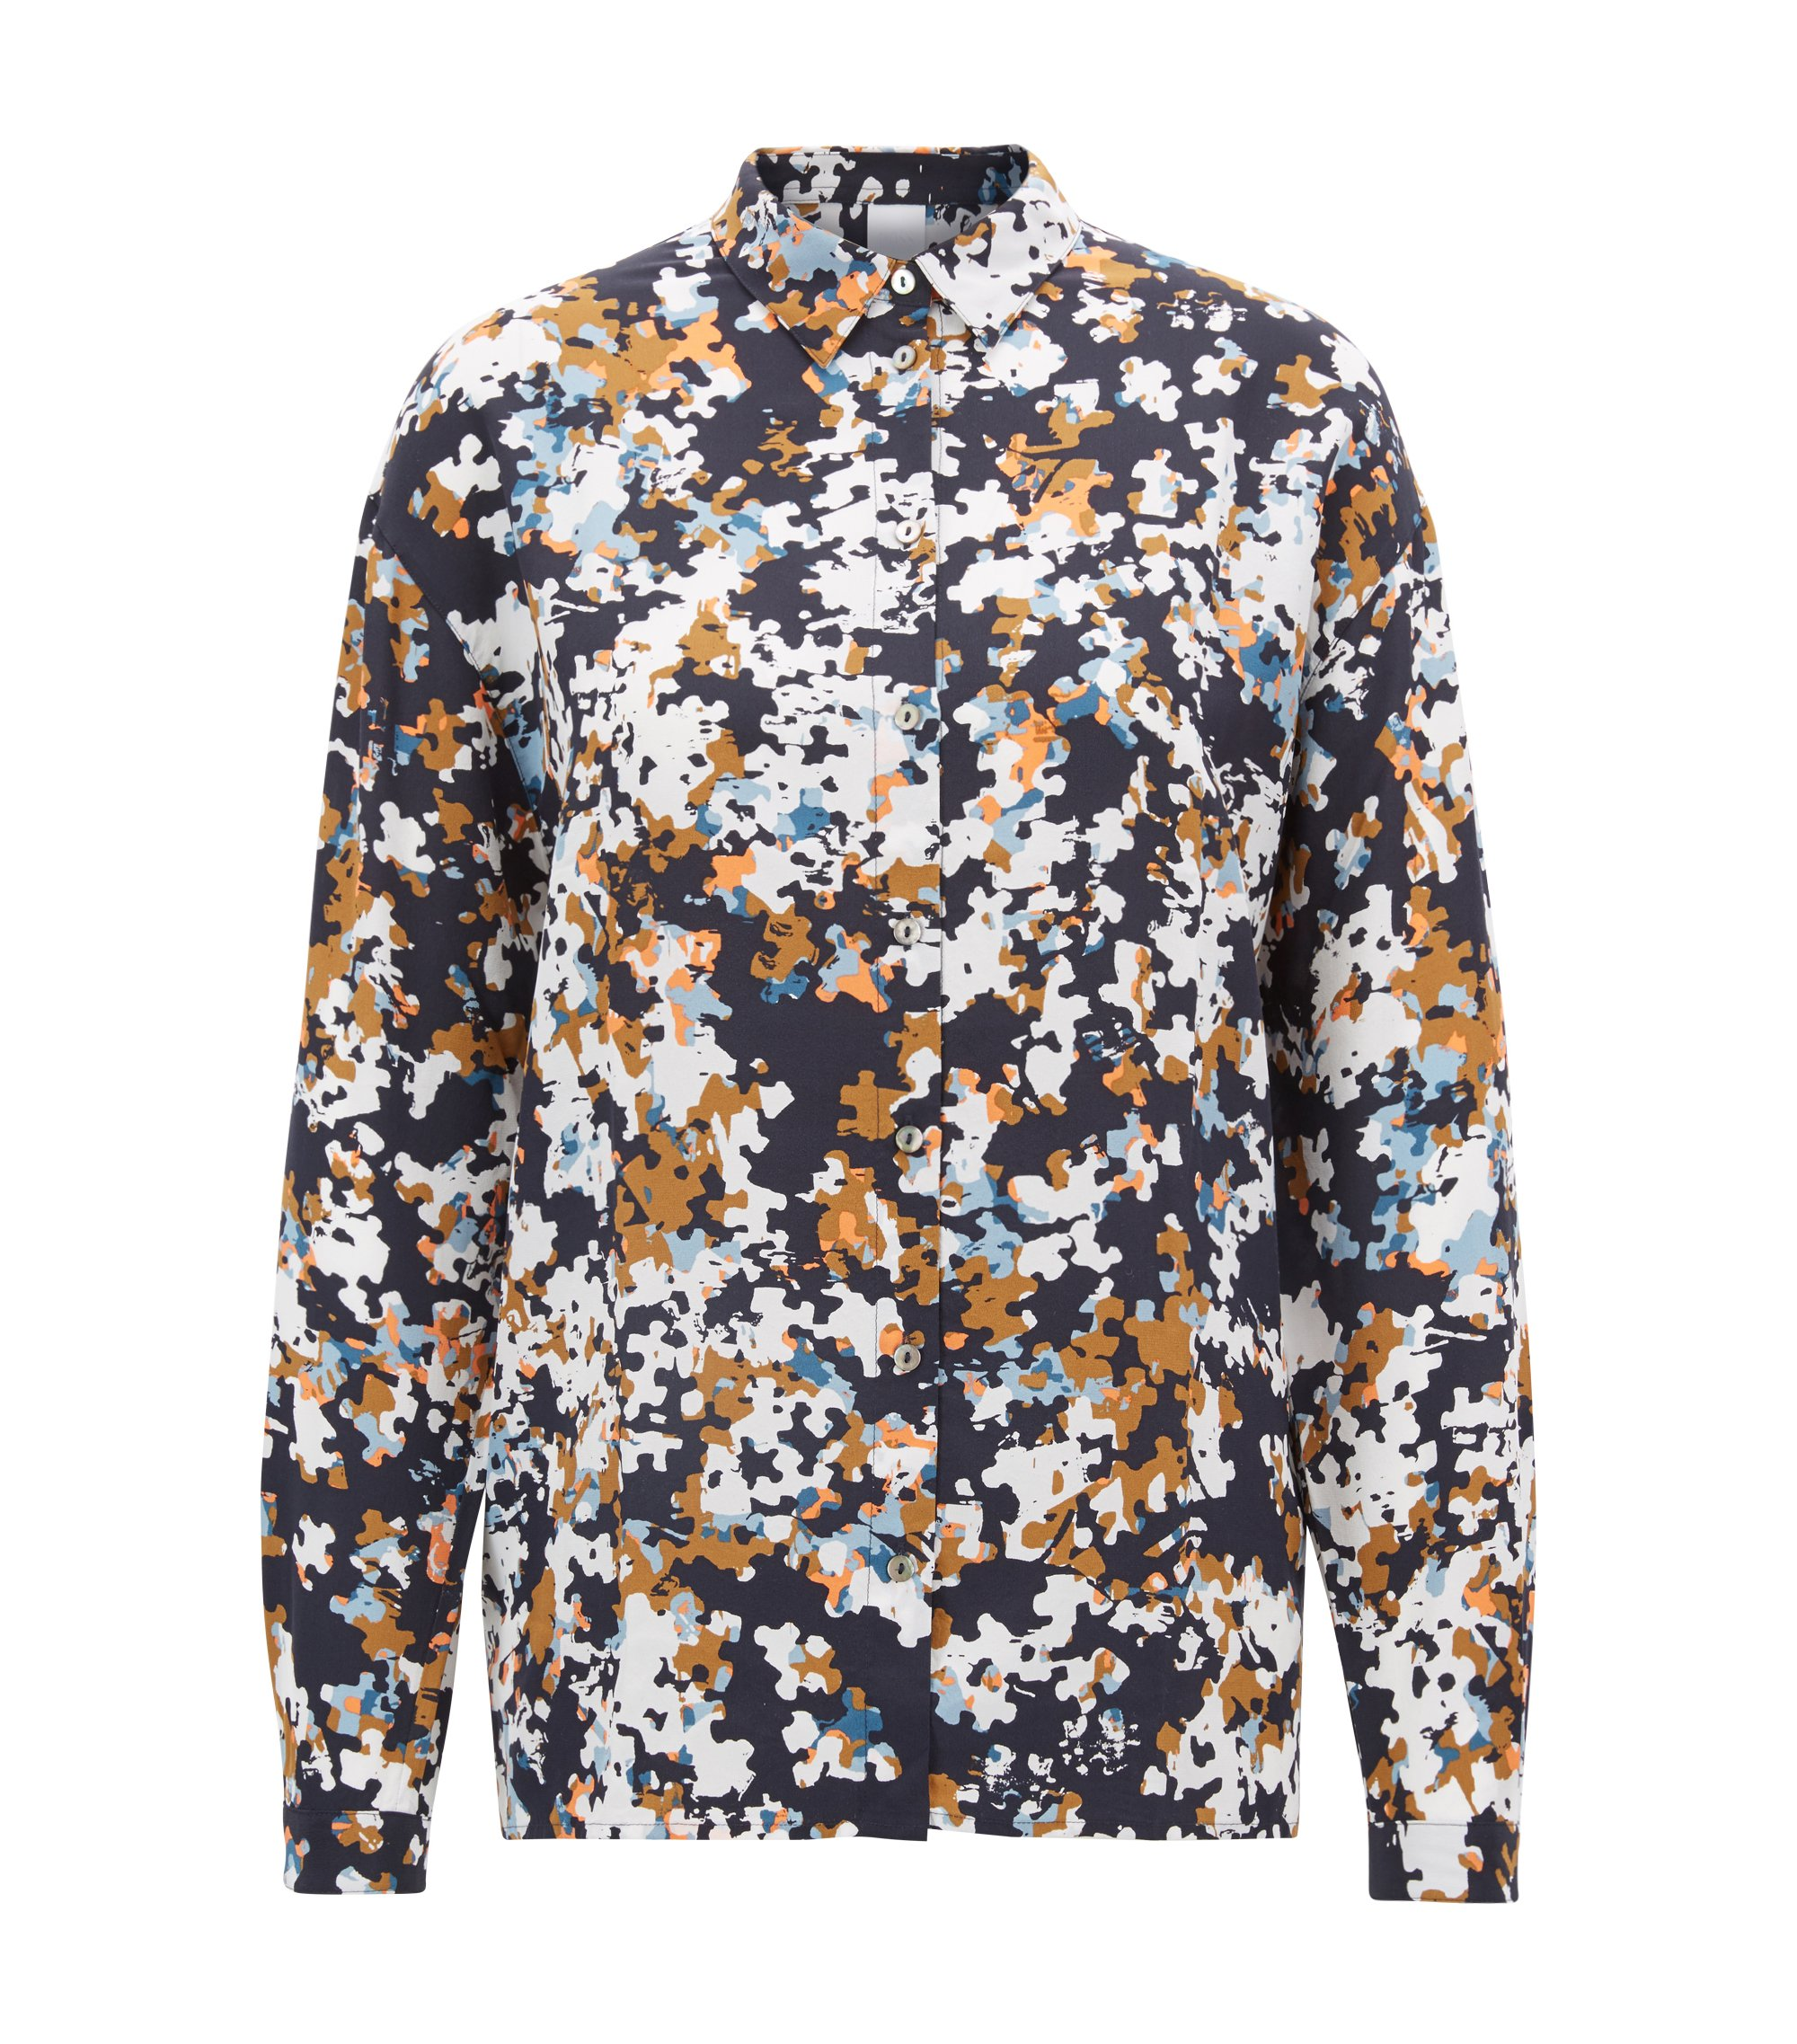 Oversized-fit silk blouse with puzzle-effect print, Patterned